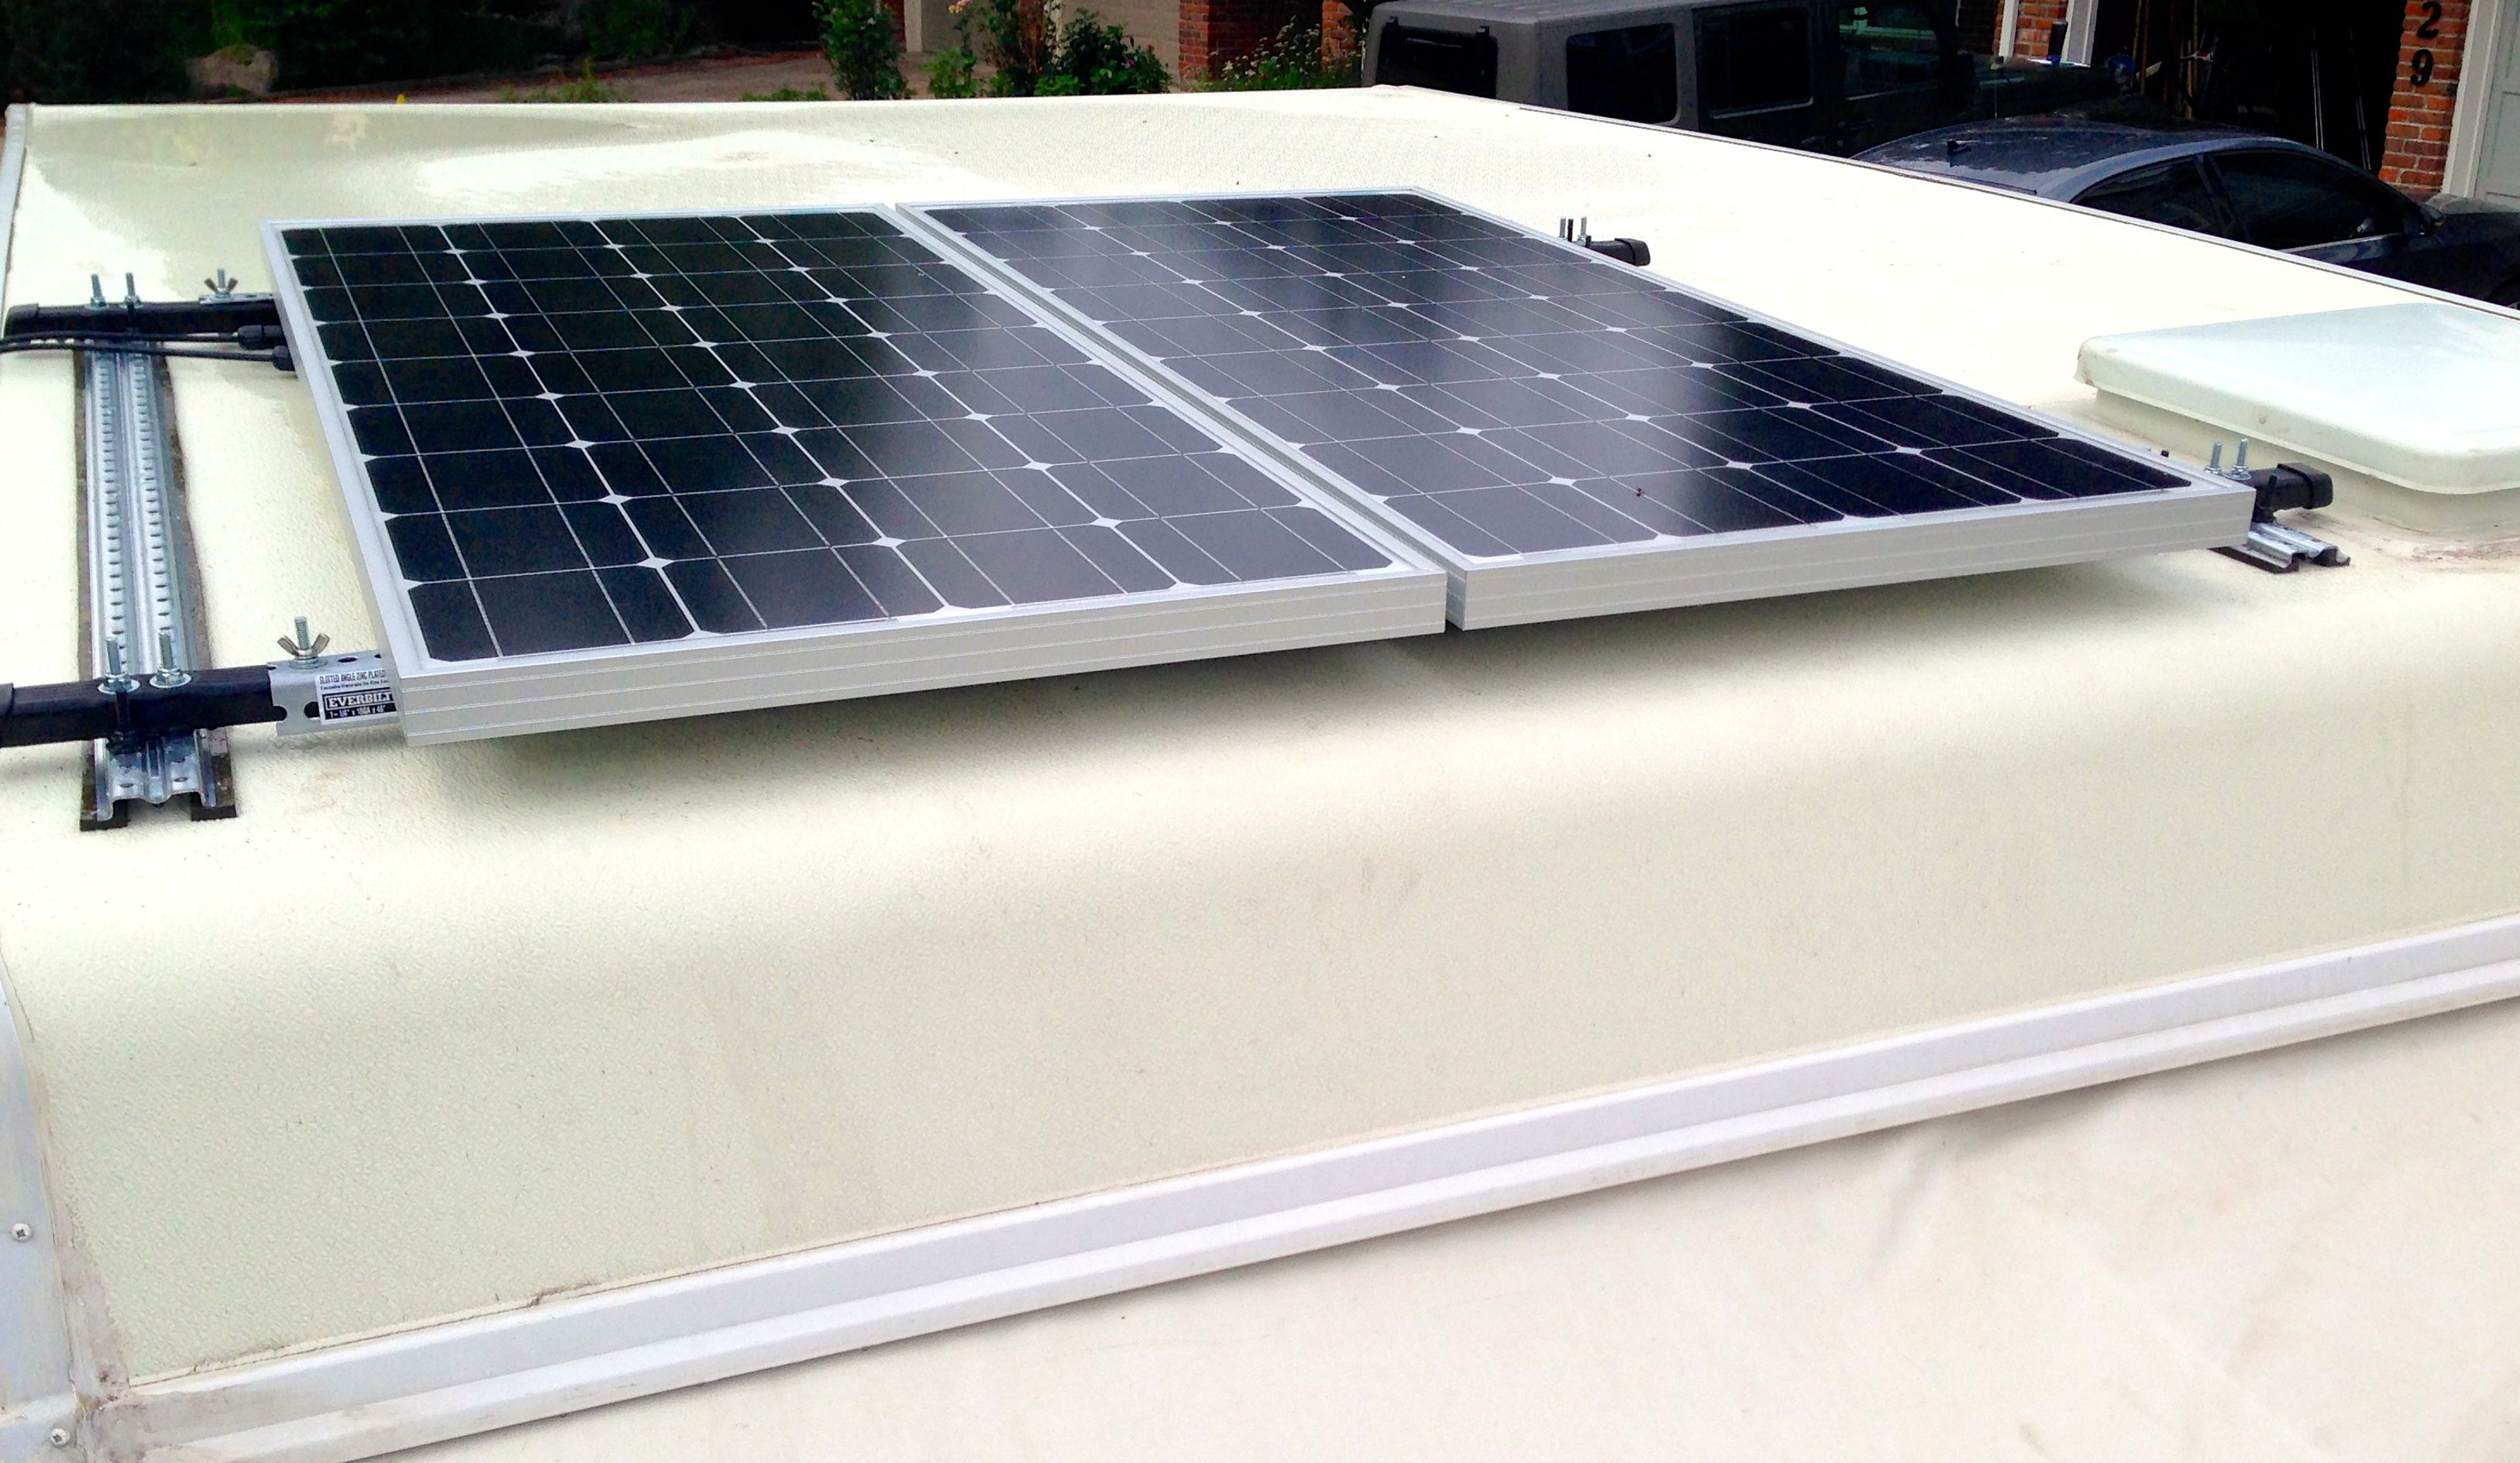 200 watts of solar panels on our pop up camper runs a cpap machine